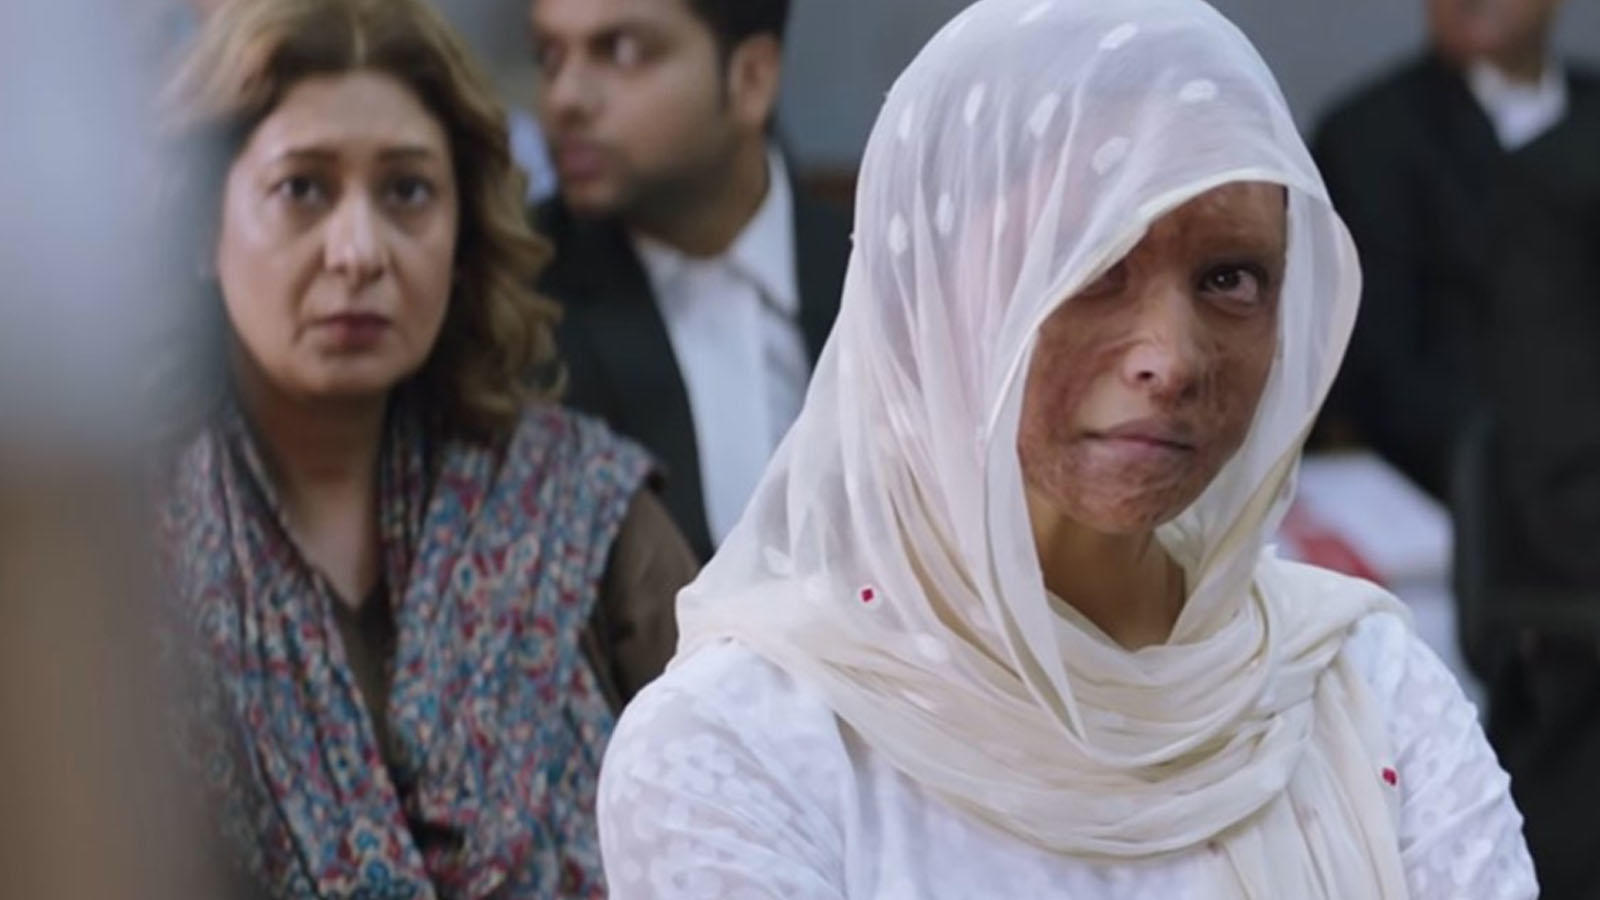 chhapaak-credit-row-lawyer-aparna-bhat-files-contempt-plea-against-makers-and-lead-cast-in-delhi-high-court